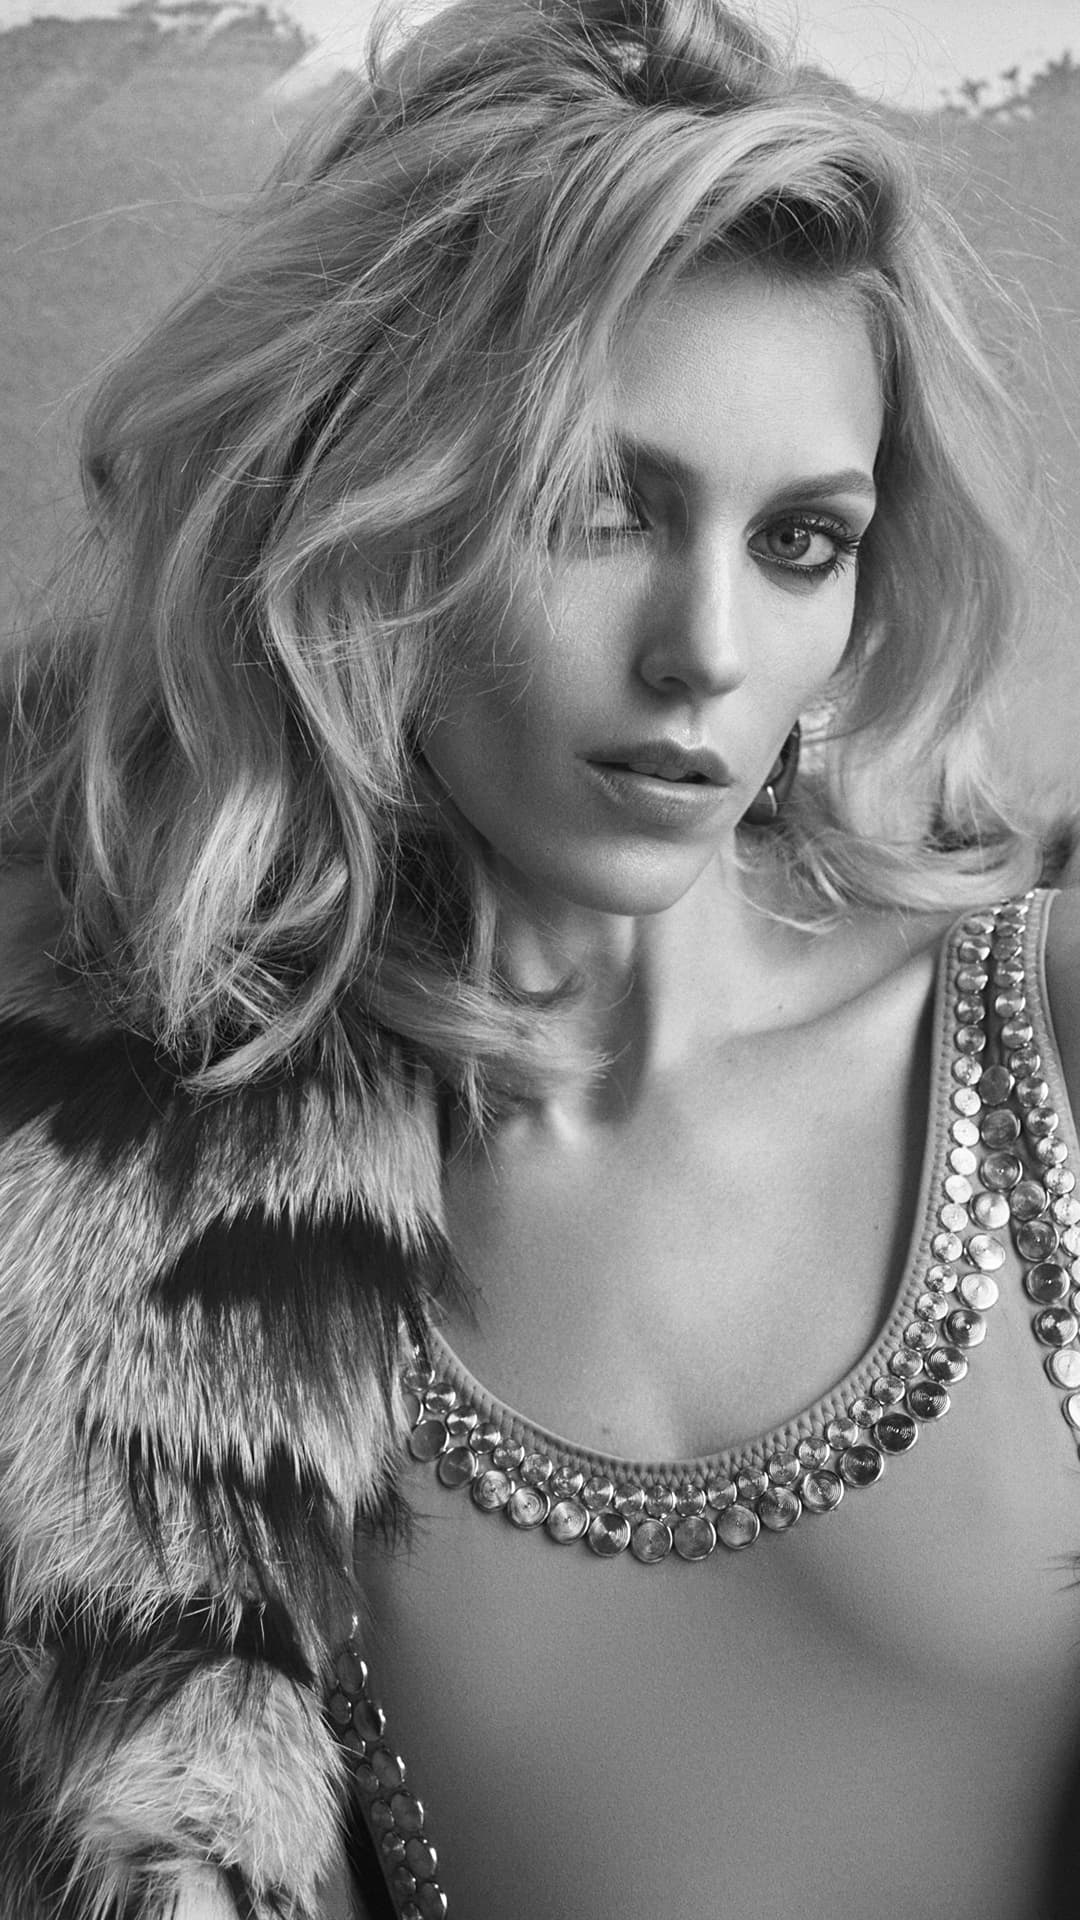 Full Hd Z Bw Android Anja Rubik Pics Photos on Hd Technology For Cars